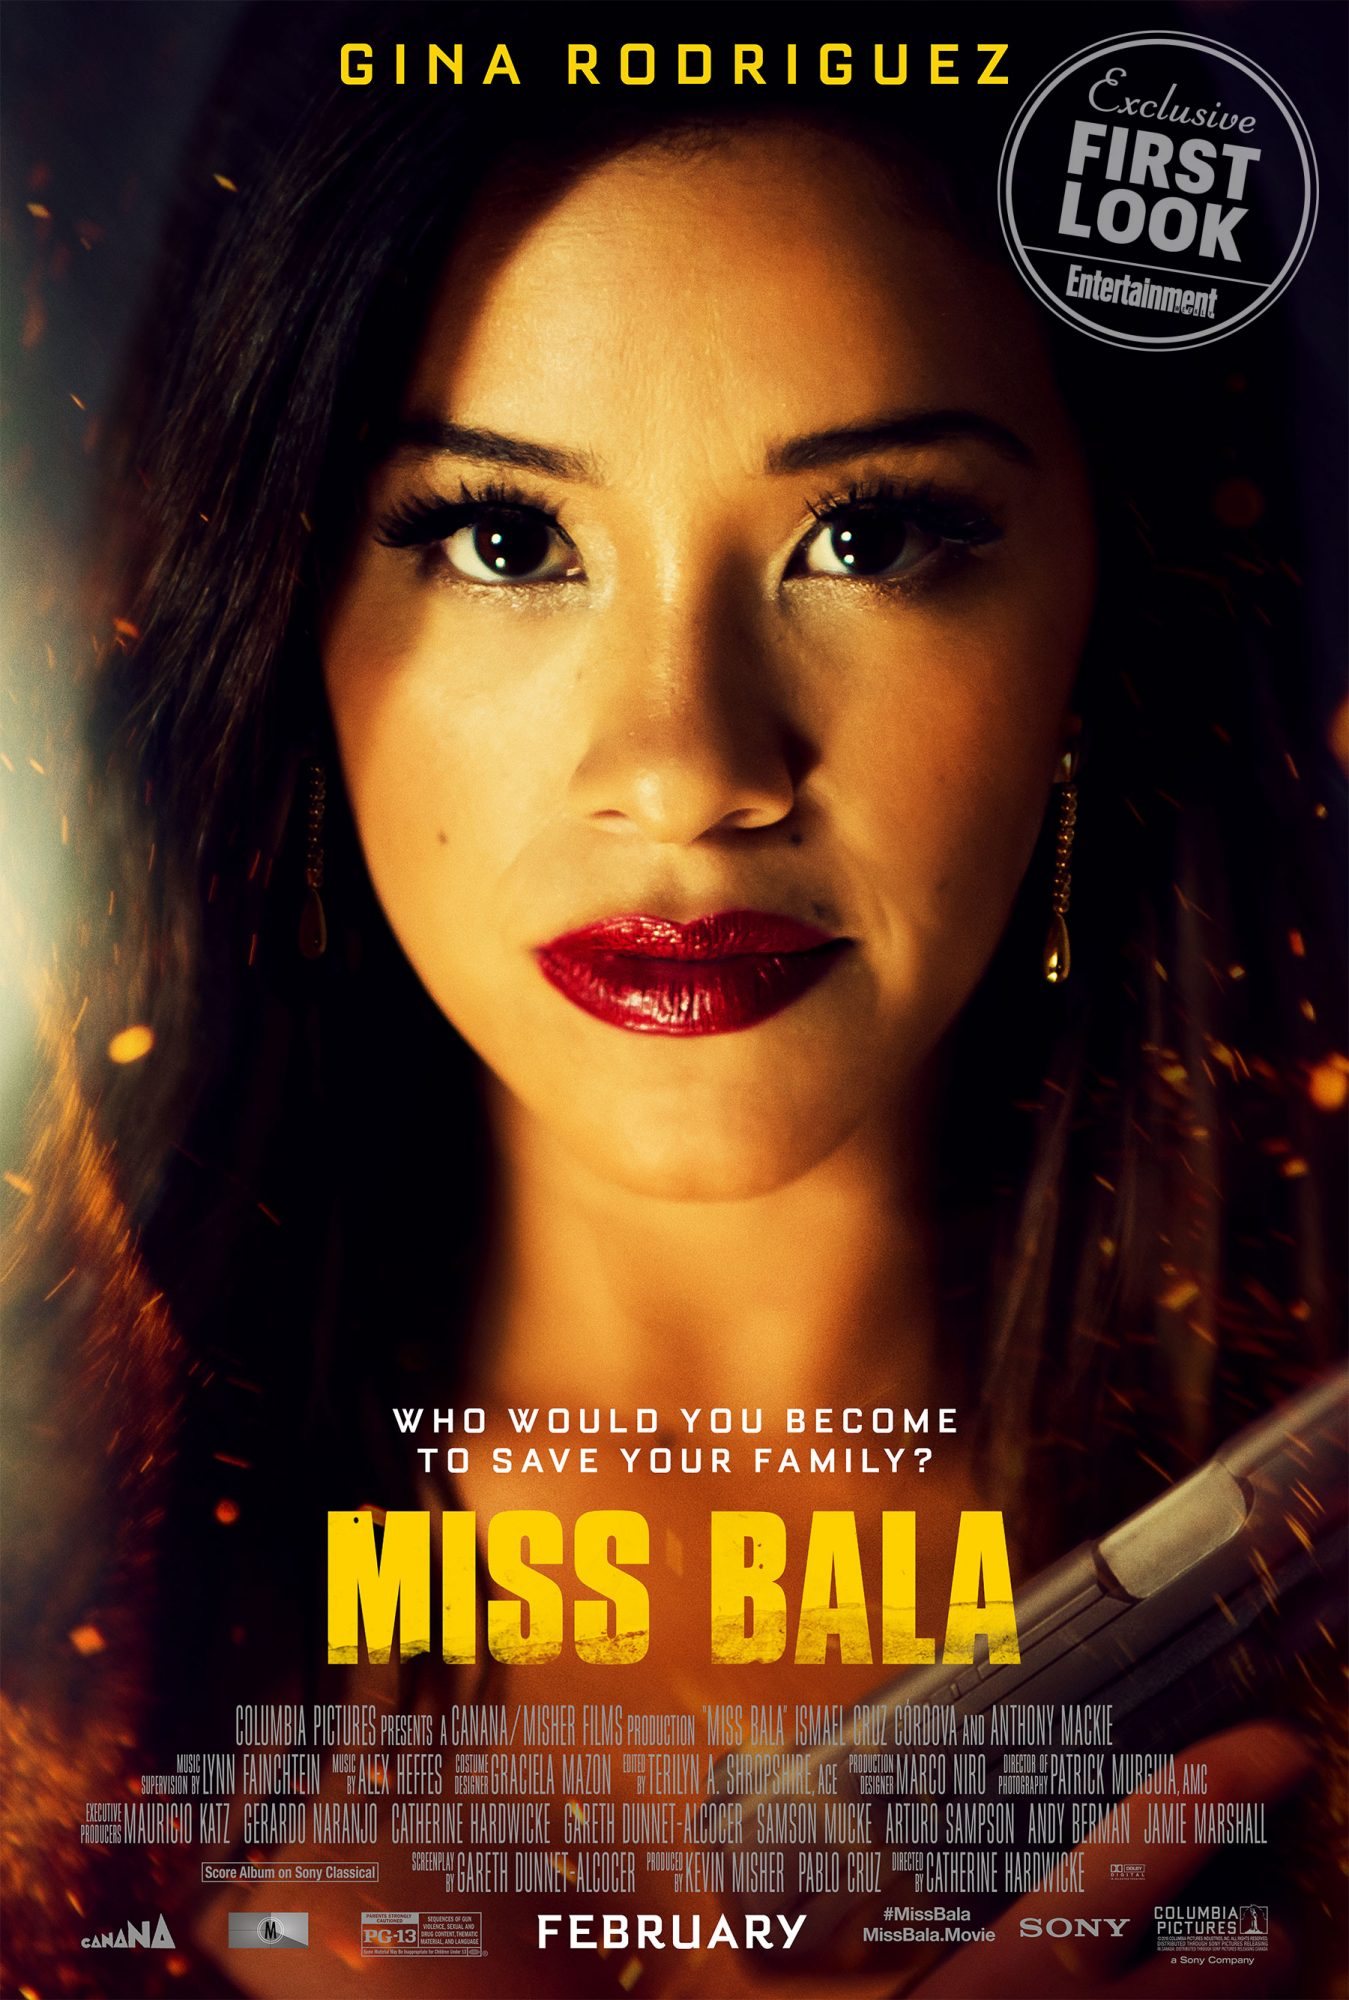 Miss Bala first look posterCR: Sony